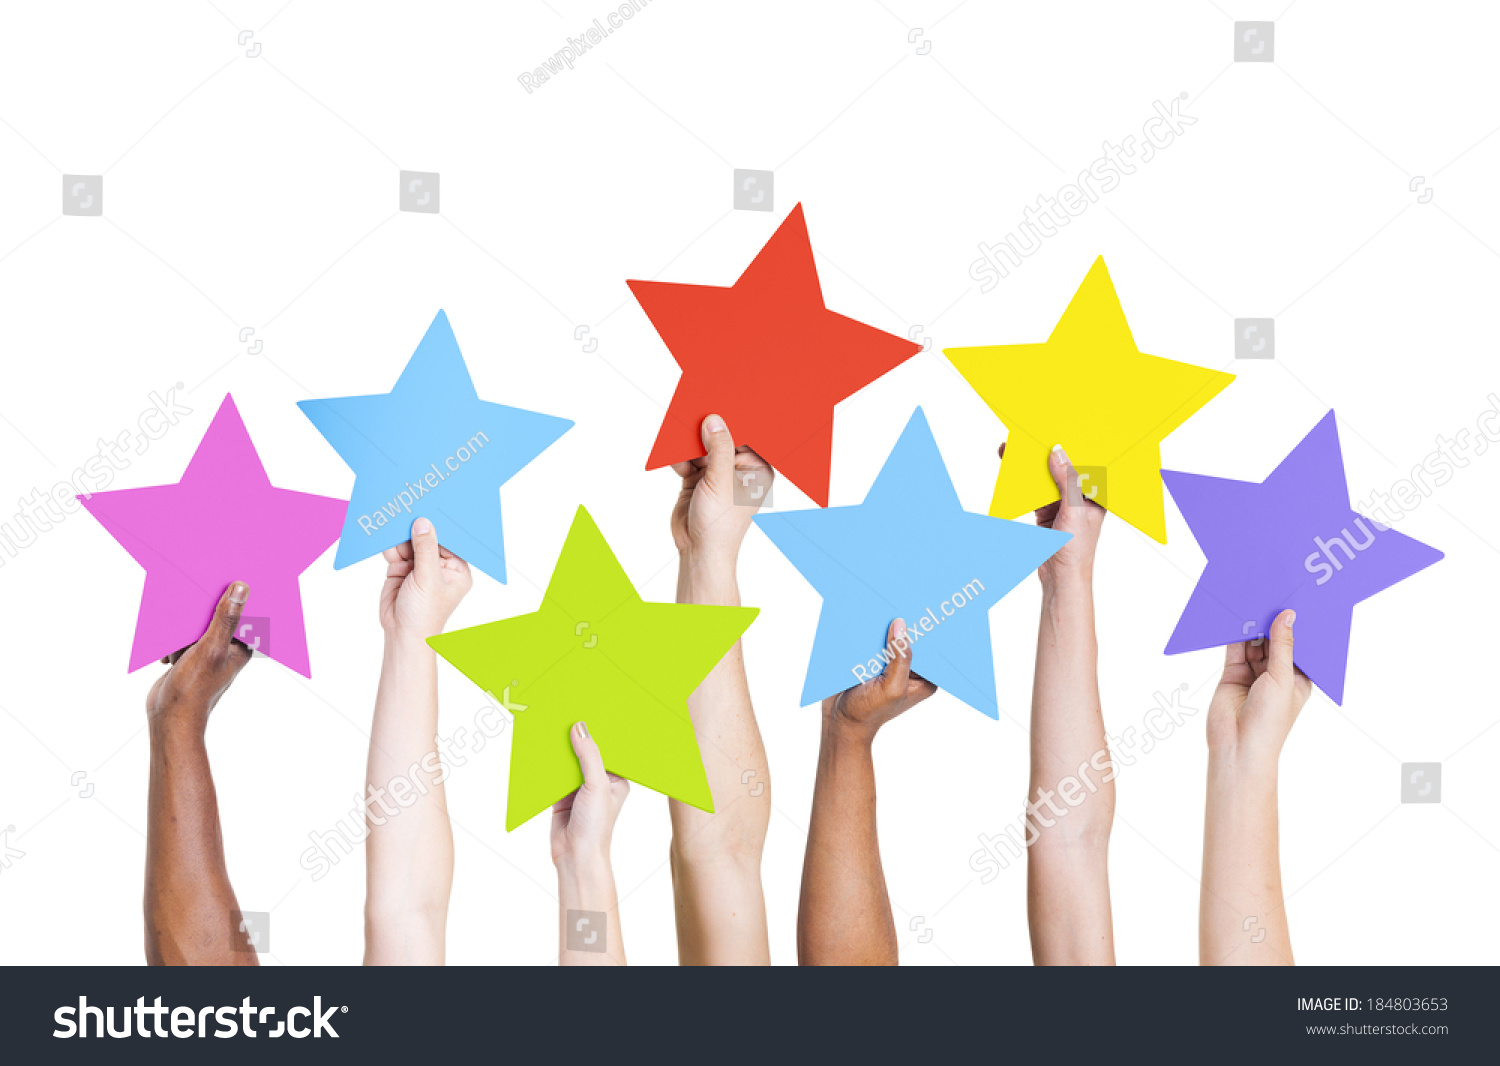 Diverse Hands Holding Colorful Stars #184803653